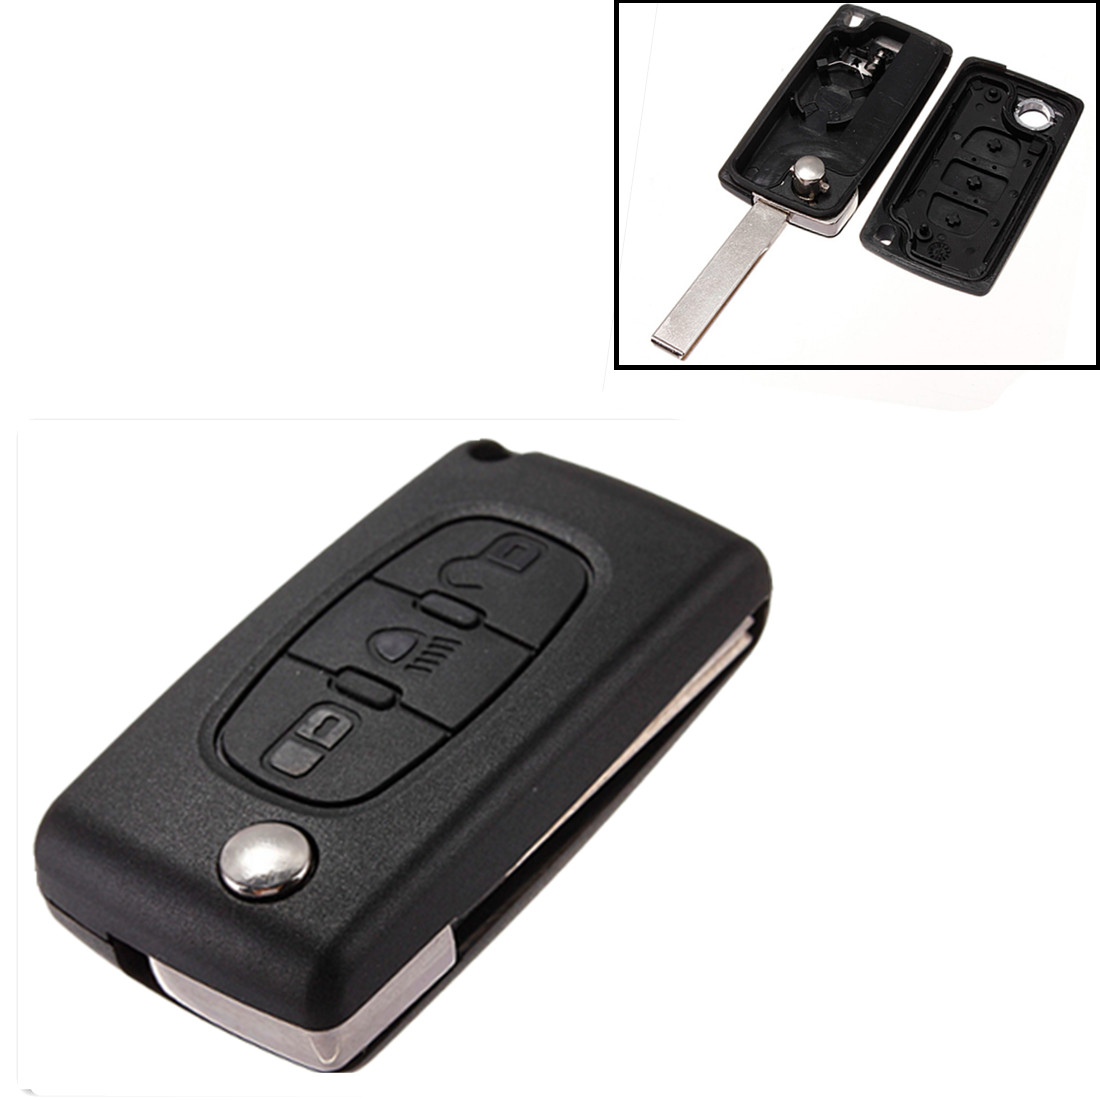 remote key fob case battery clip for citroen c2 c3 berlingo picasso 3 button ebay. Black Bedroom Furniture Sets. Home Design Ideas